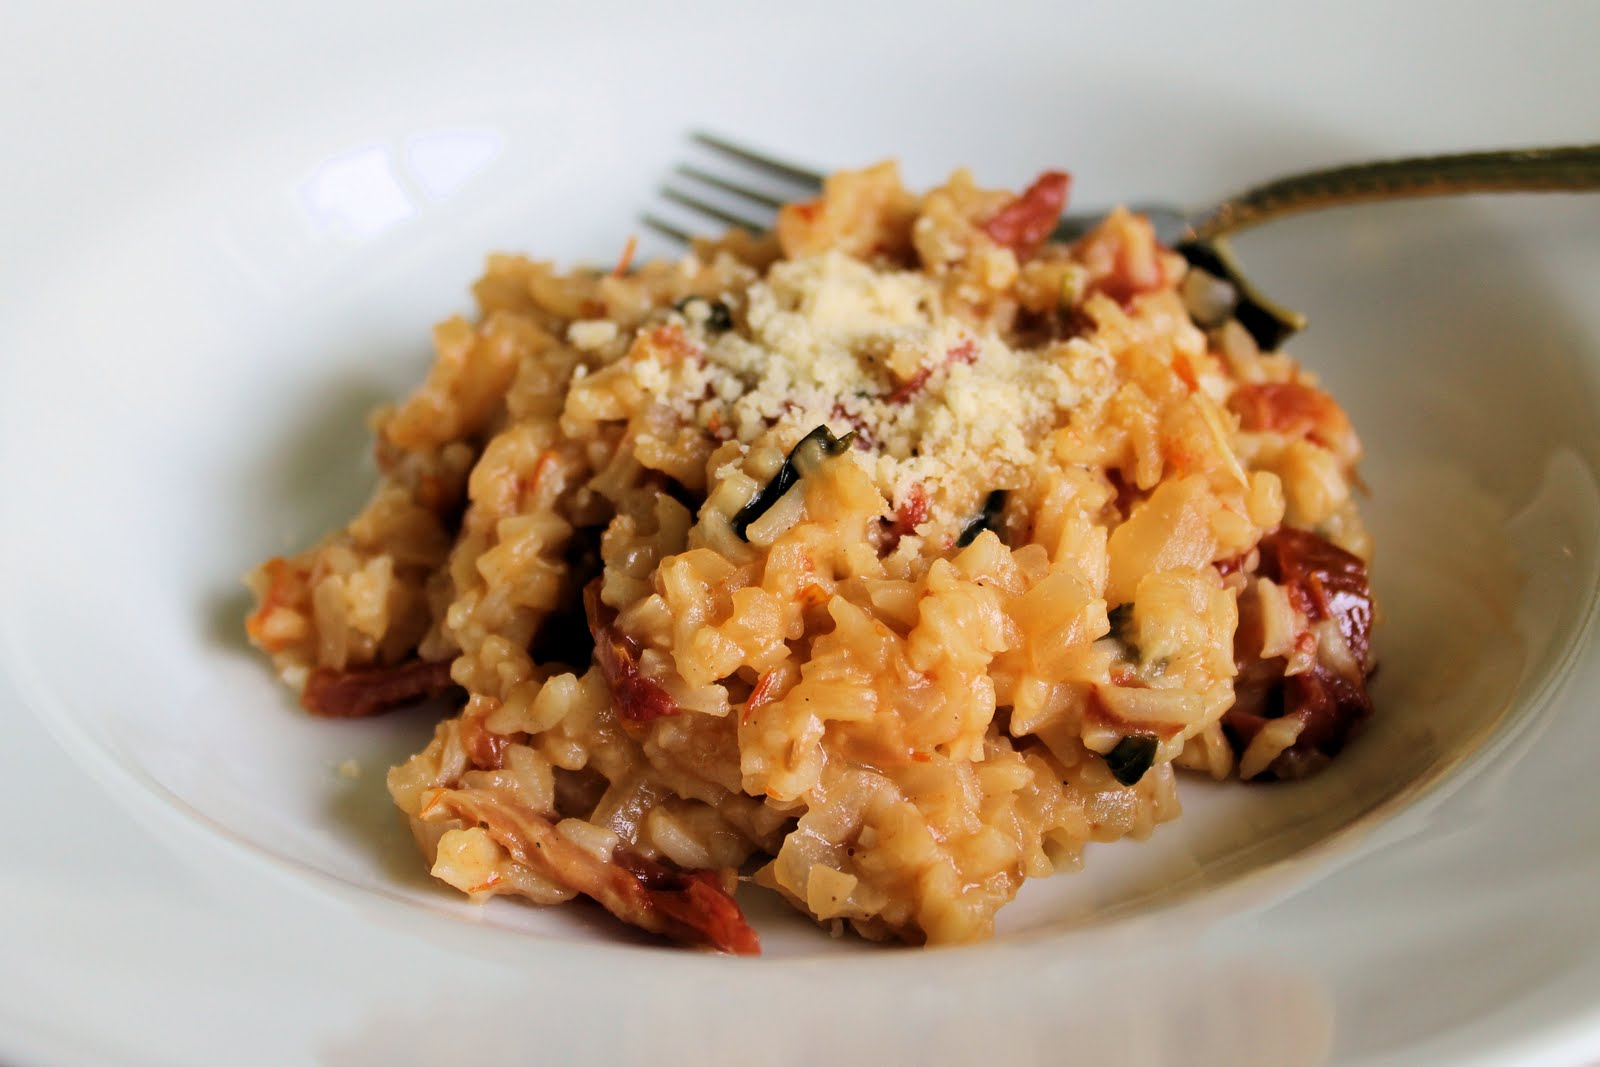 Savoir Faire: Sun Dried Tomatoes and Basil Risotto